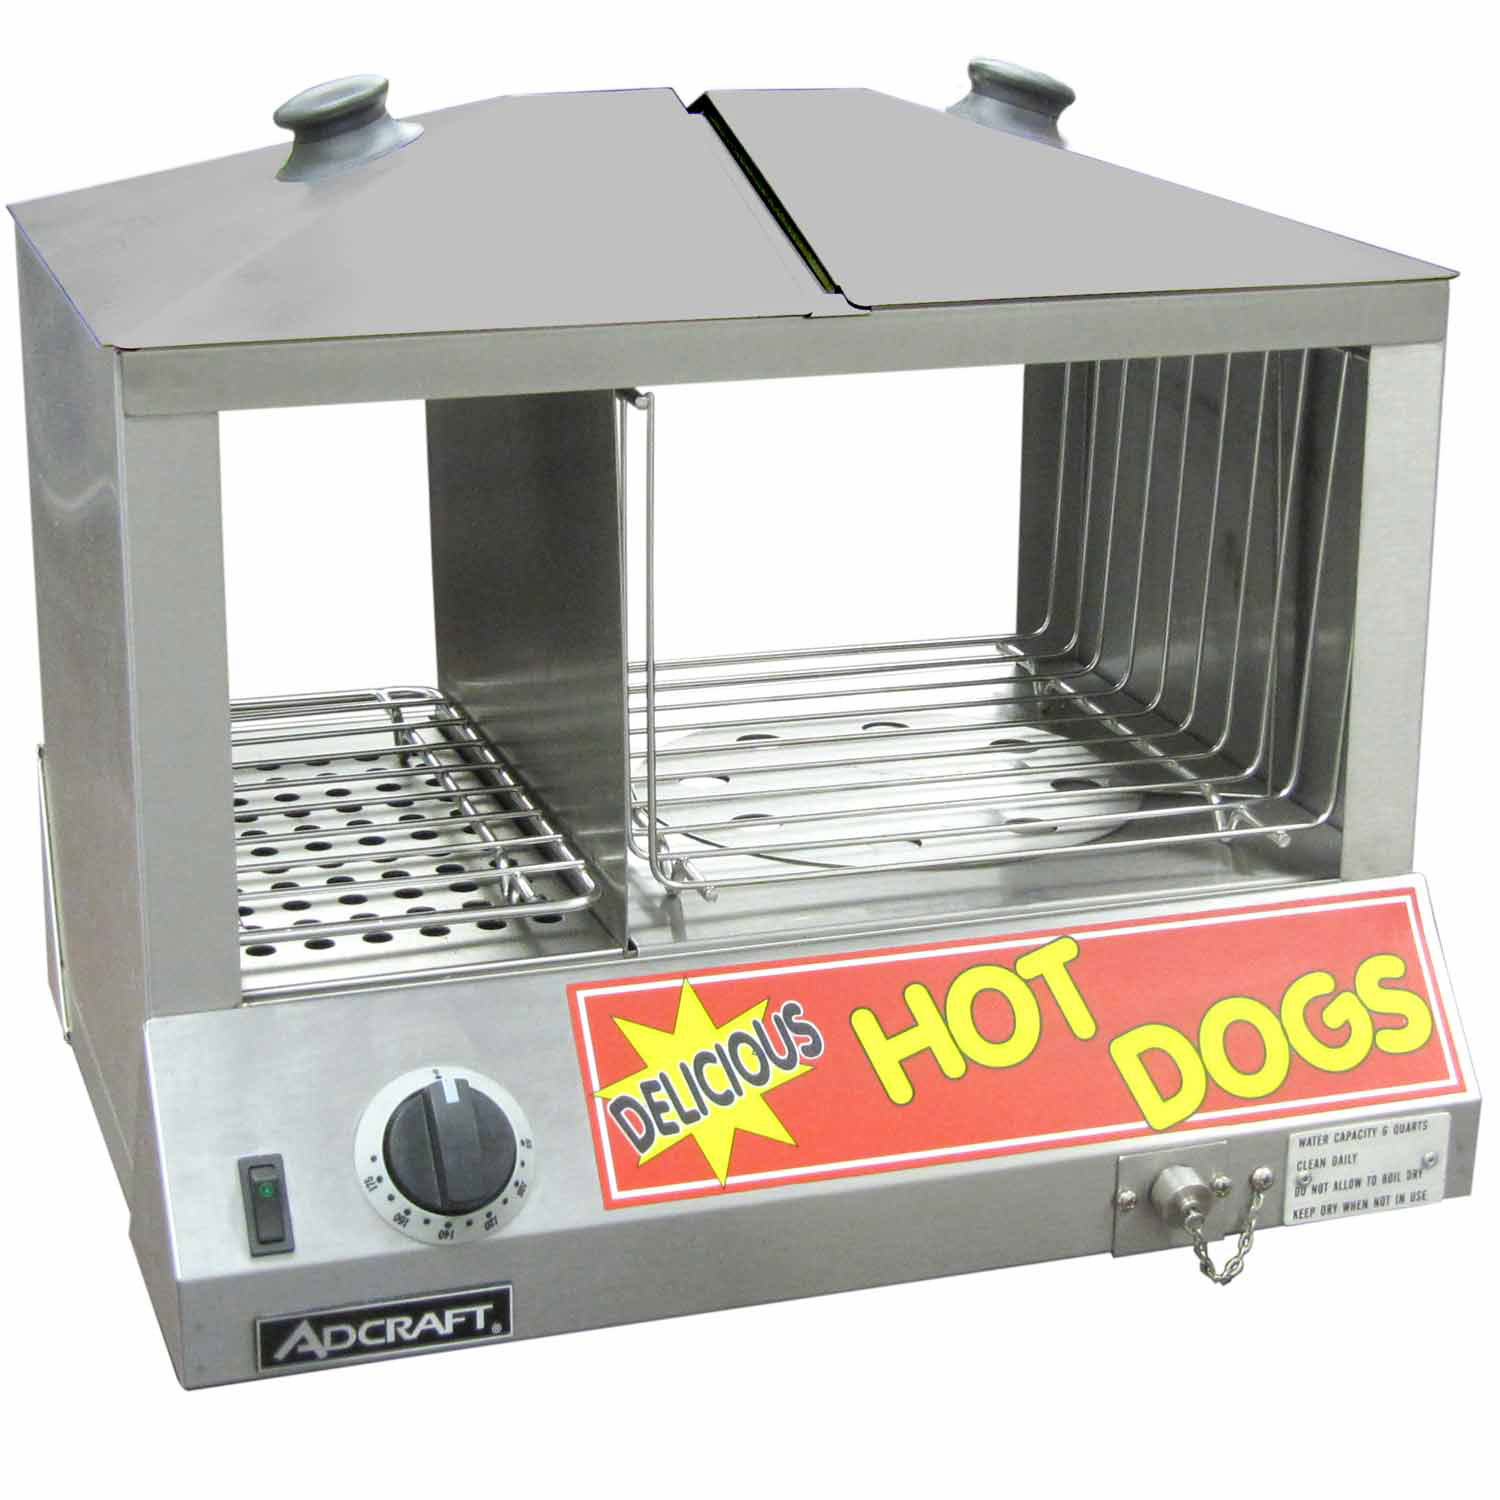 Adcraft HDS-1200W Hot Dog Steamer & Warmer, Holds 100 Hot Dogs, 36-48 Buns, 120V by